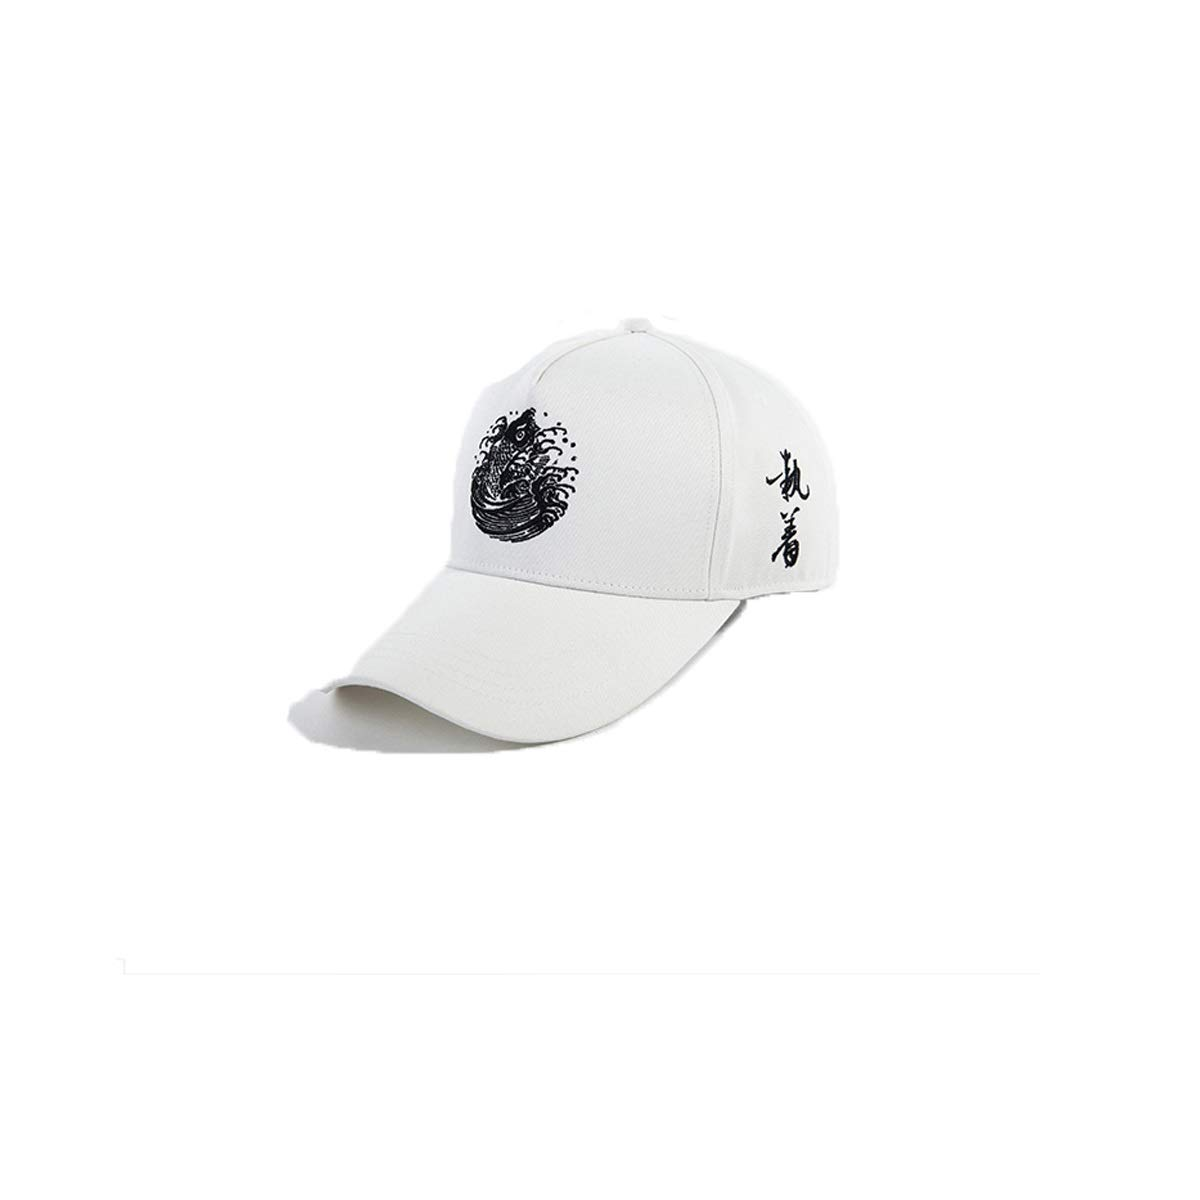 Zhongyue Hat Male Summer Cap Chinese Style Outdoor Sports Cap Casual Wild Baseball Cap, White, Blue, Black Summer hat (Color : White)